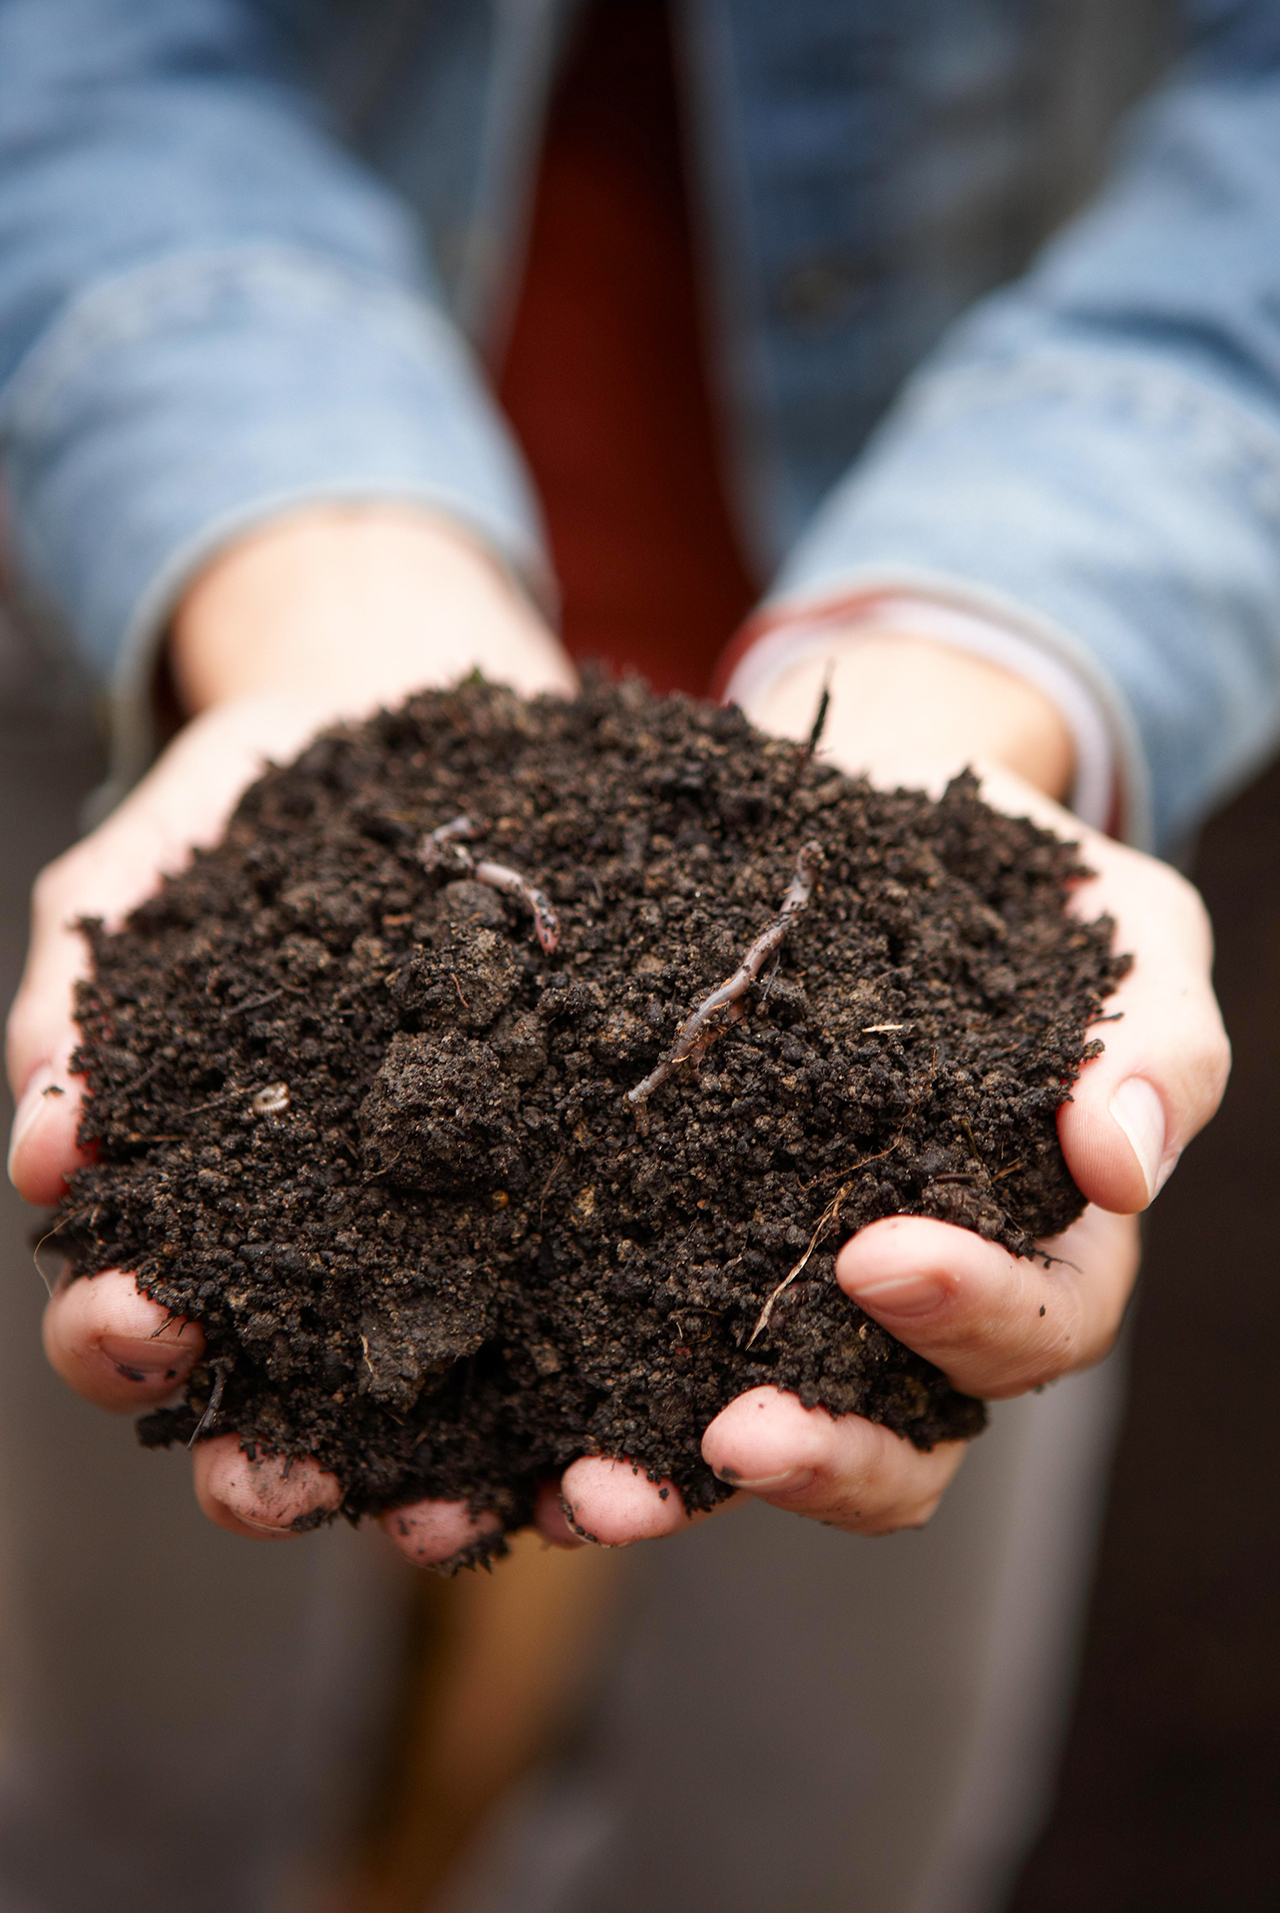 holding soil with worms